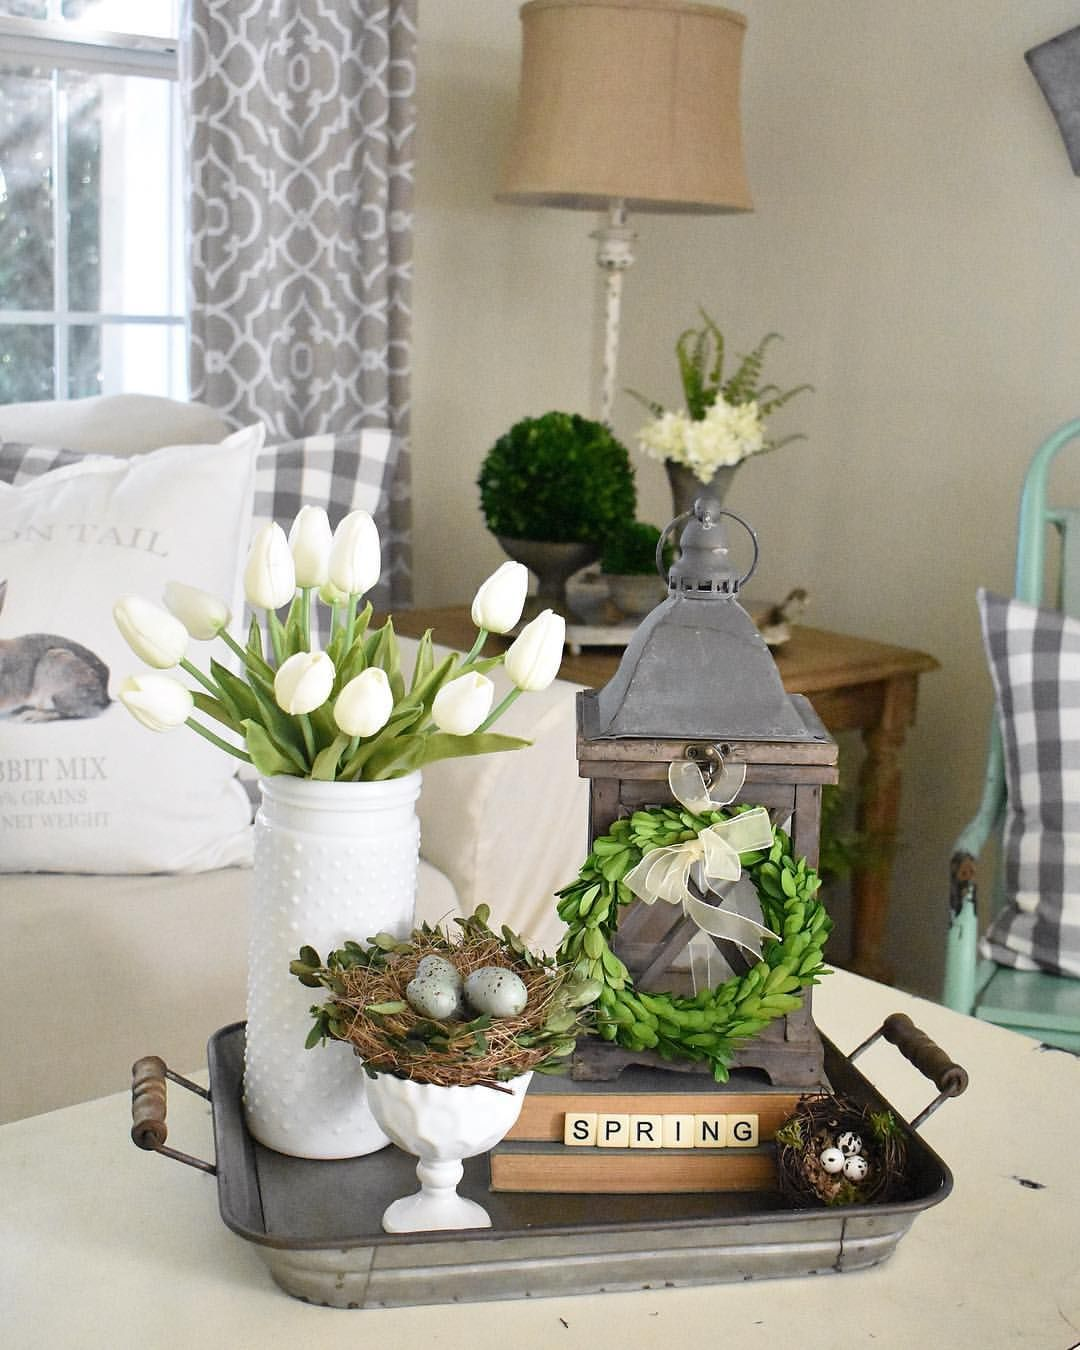 Spring Home Decor Design Ideas: Happy Sunday Y'all! Spring Is Right Around The Corner, And